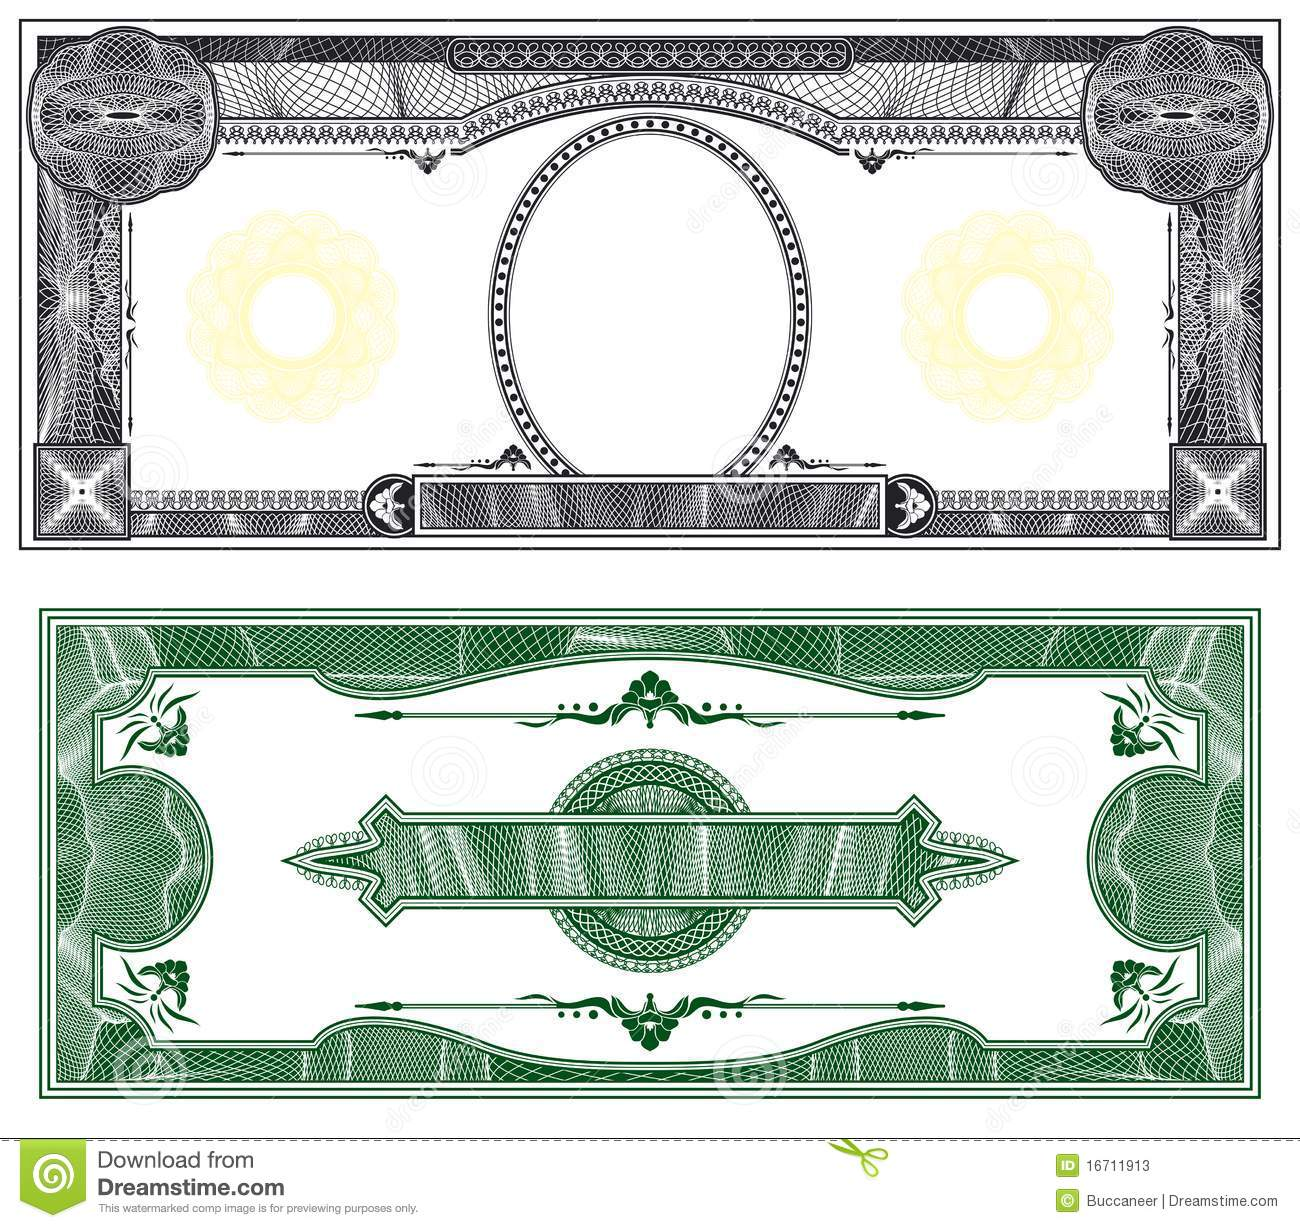 Dollar bill template clipart clipart suggest for Dollar certificate template